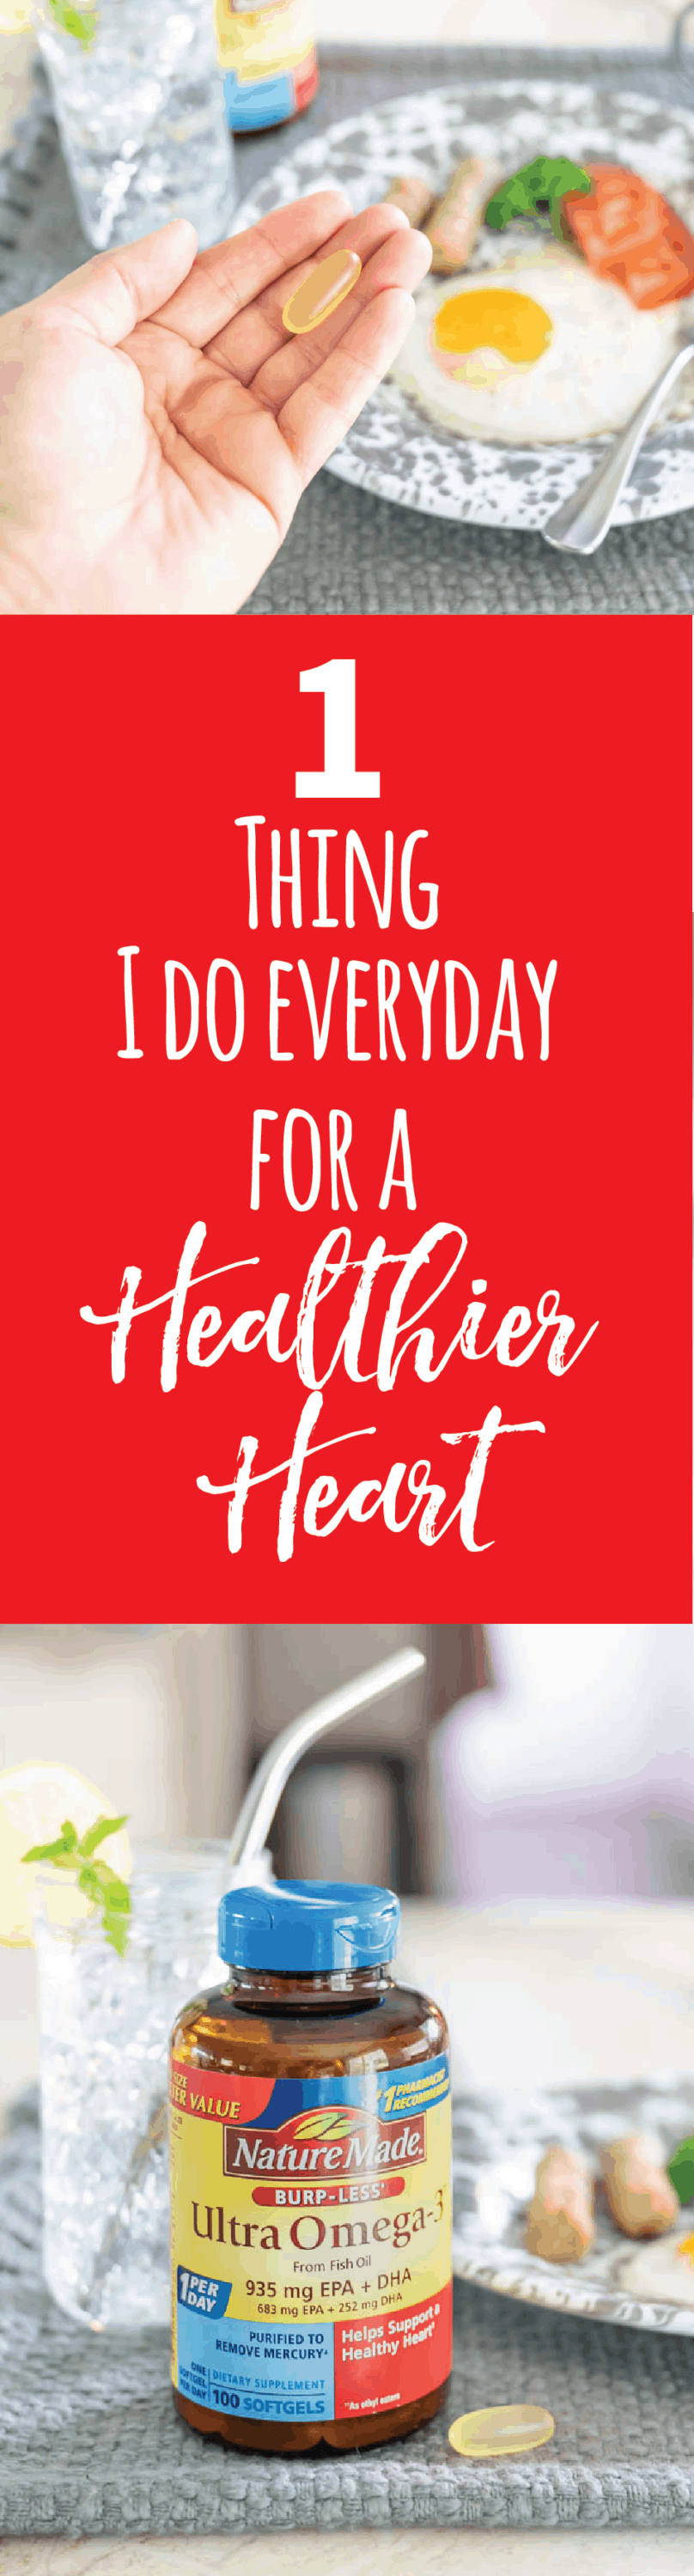 1 Thing I do Every Day for a Healthier Heart #ad #naturemadehearthealth